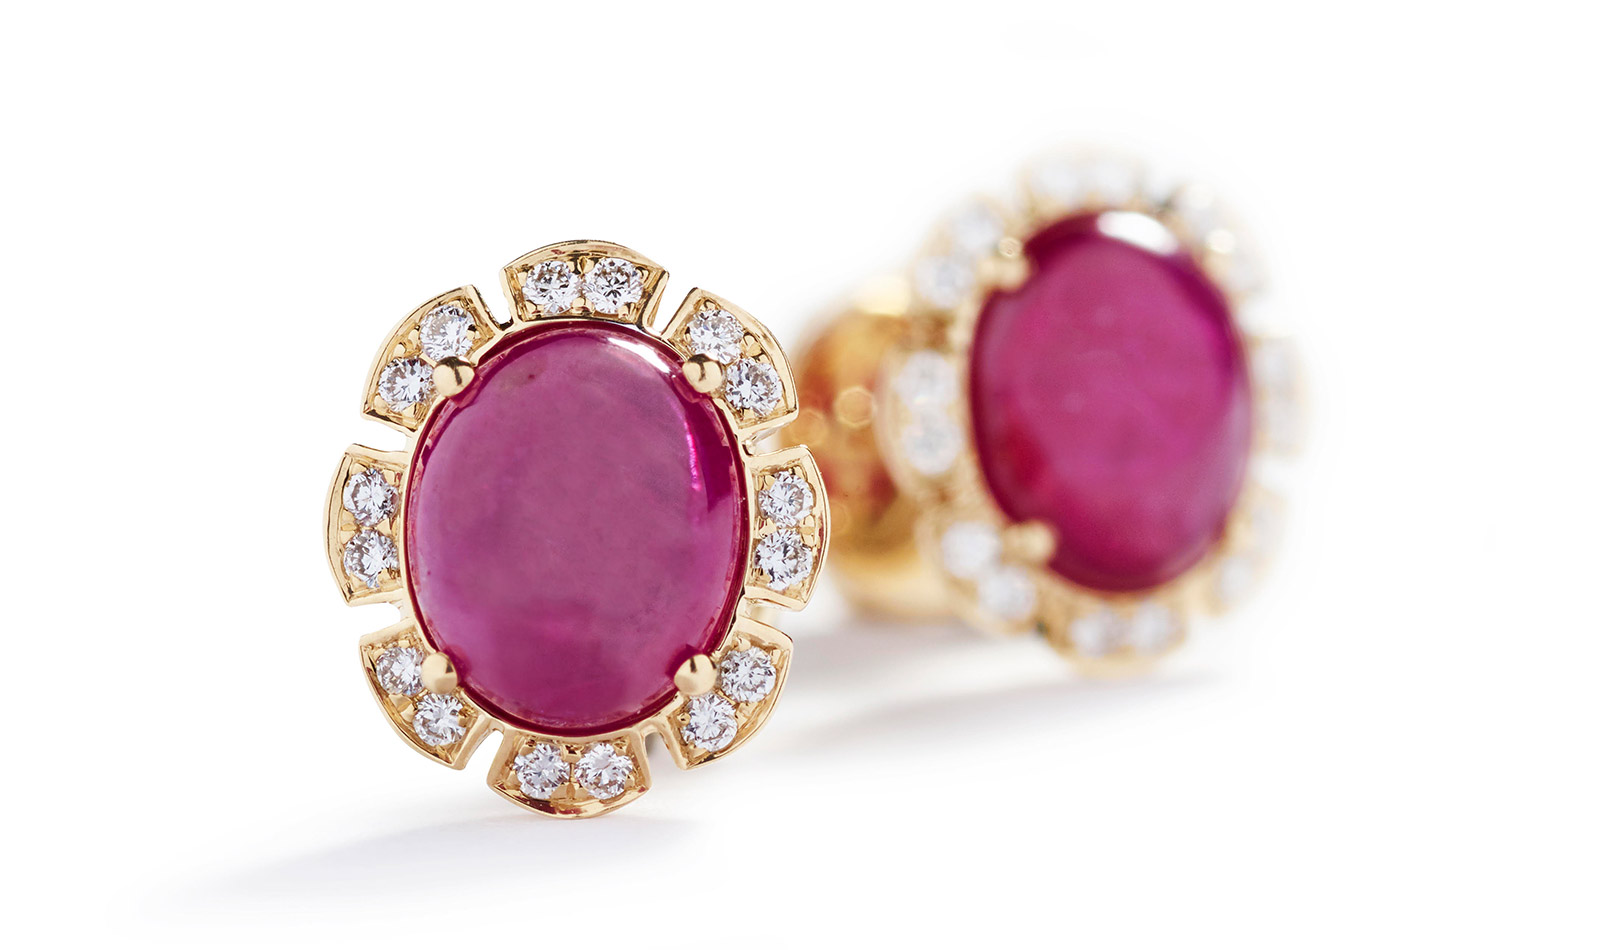 Hartmann's earrings with 2.96 cts Greenland rubies